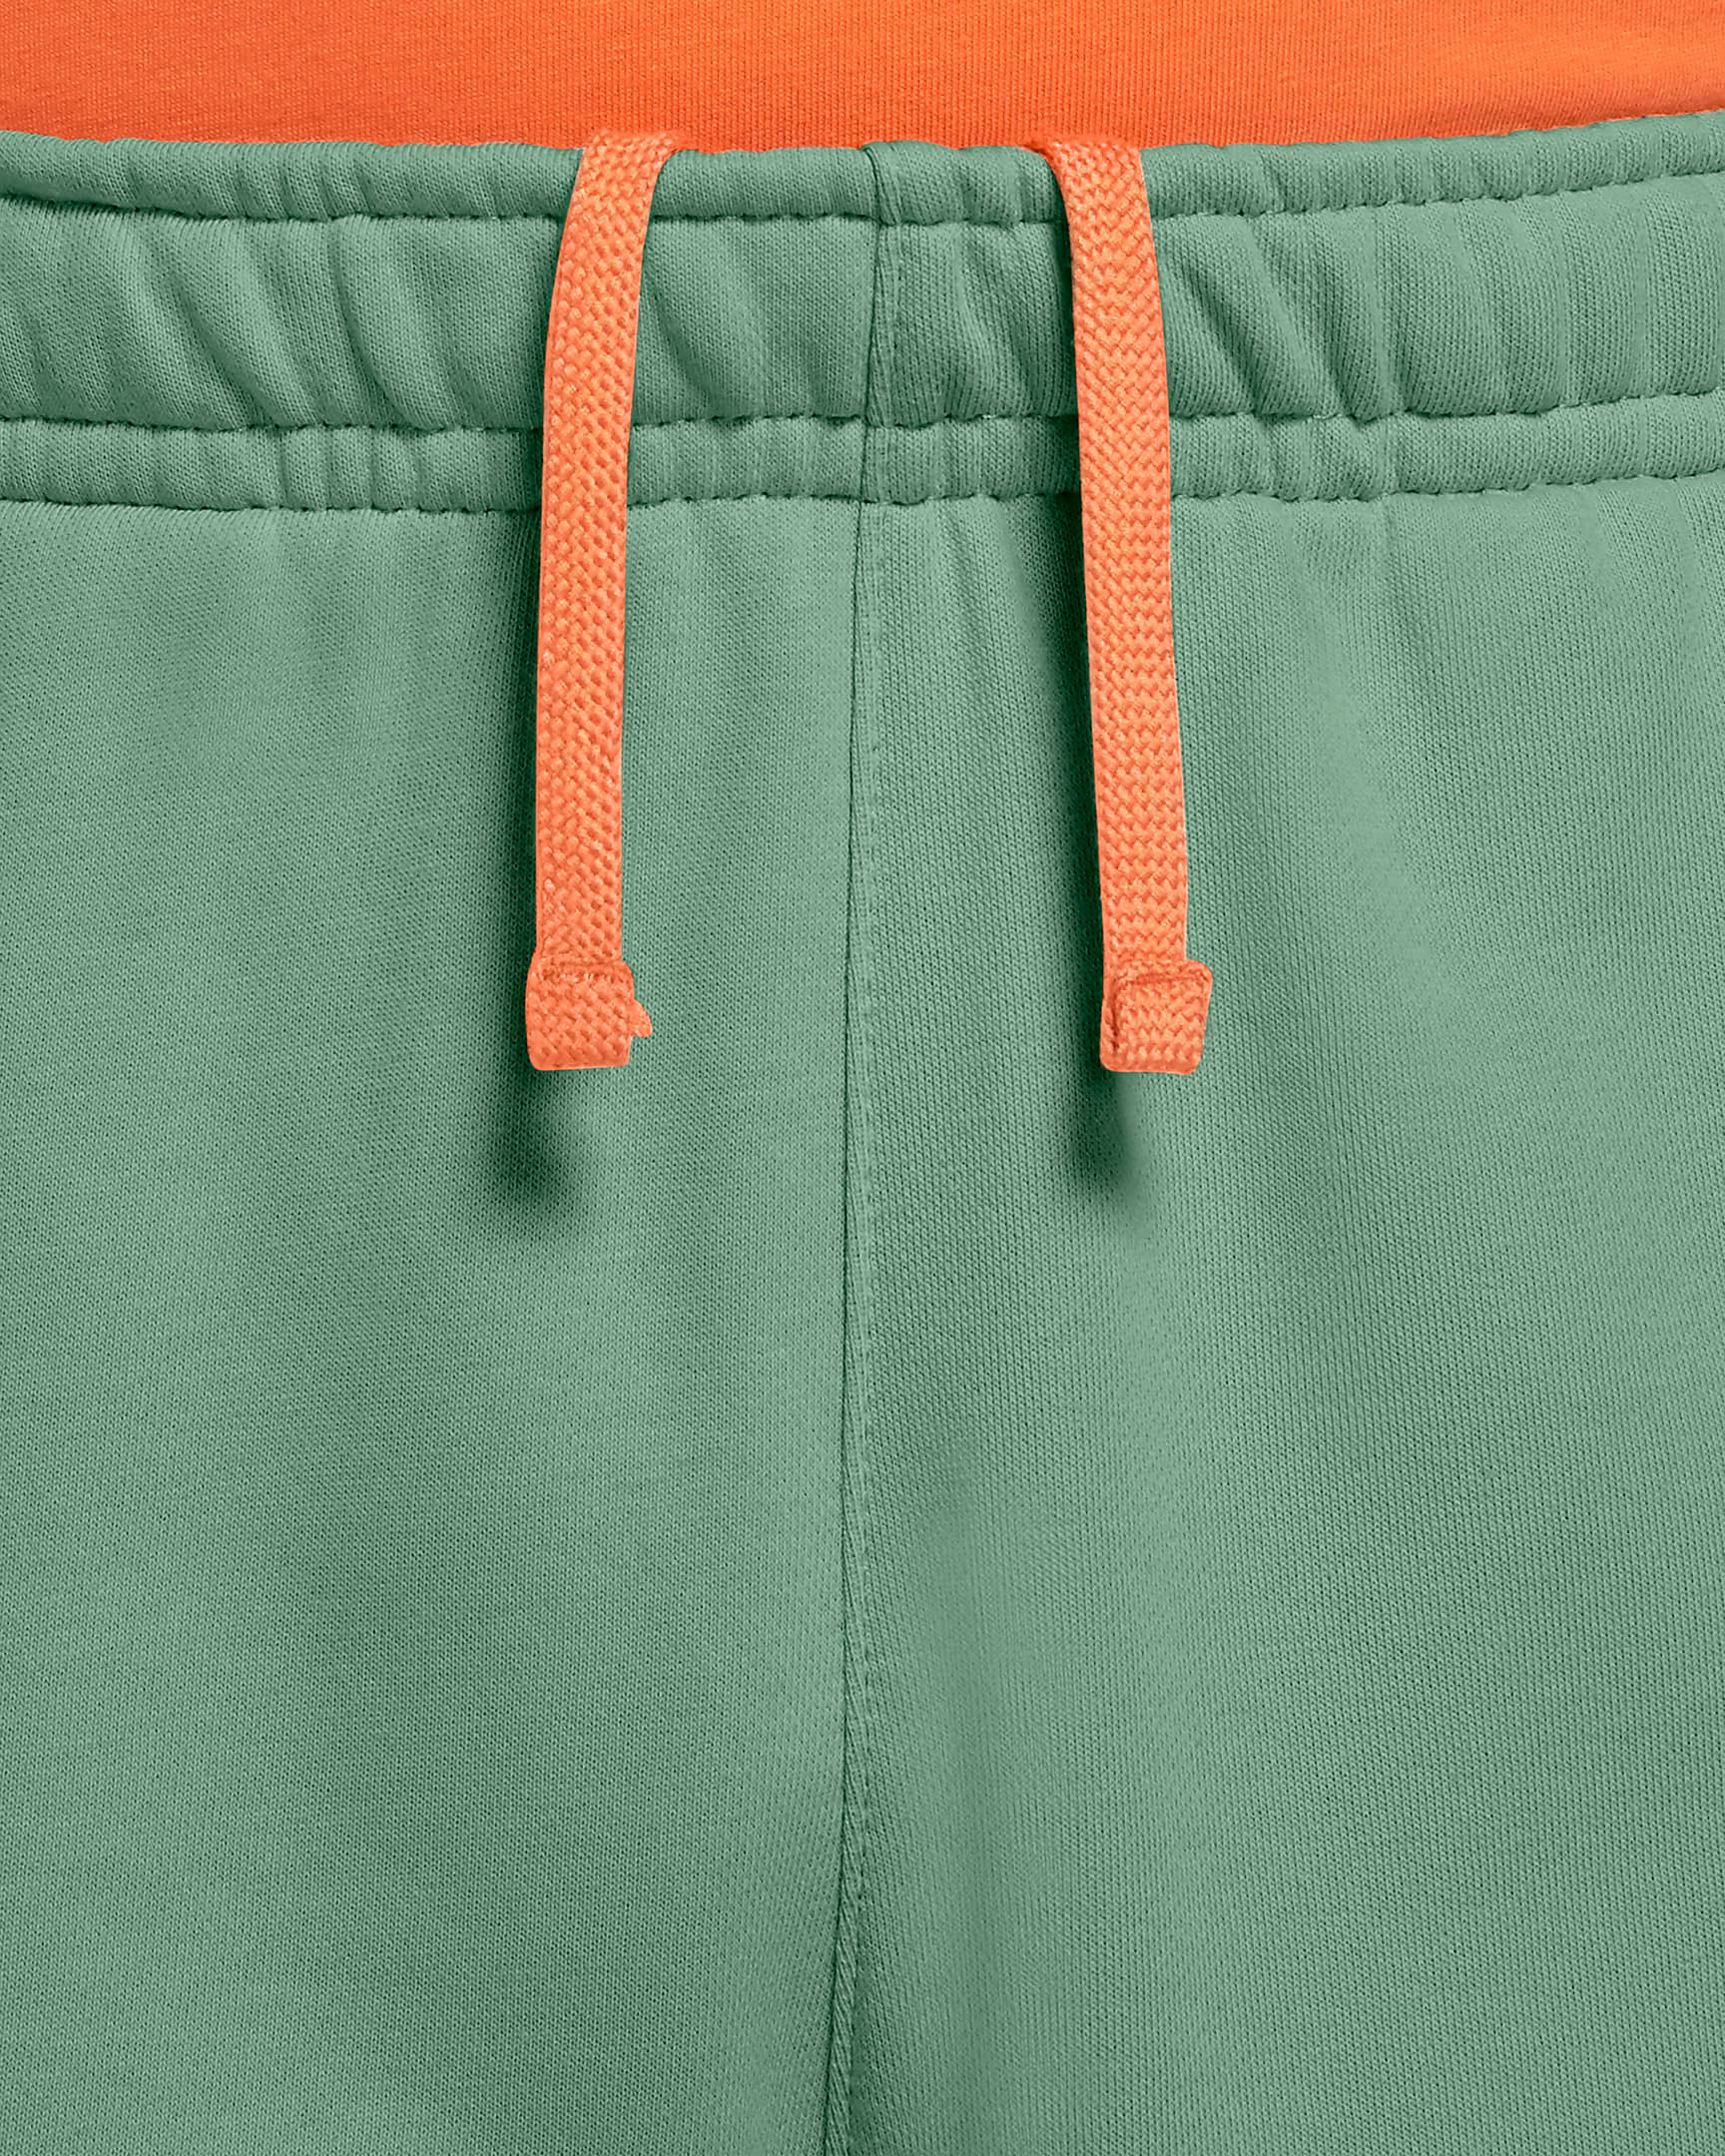 nike-sportswear-be-kind-green-orange-shorts-3